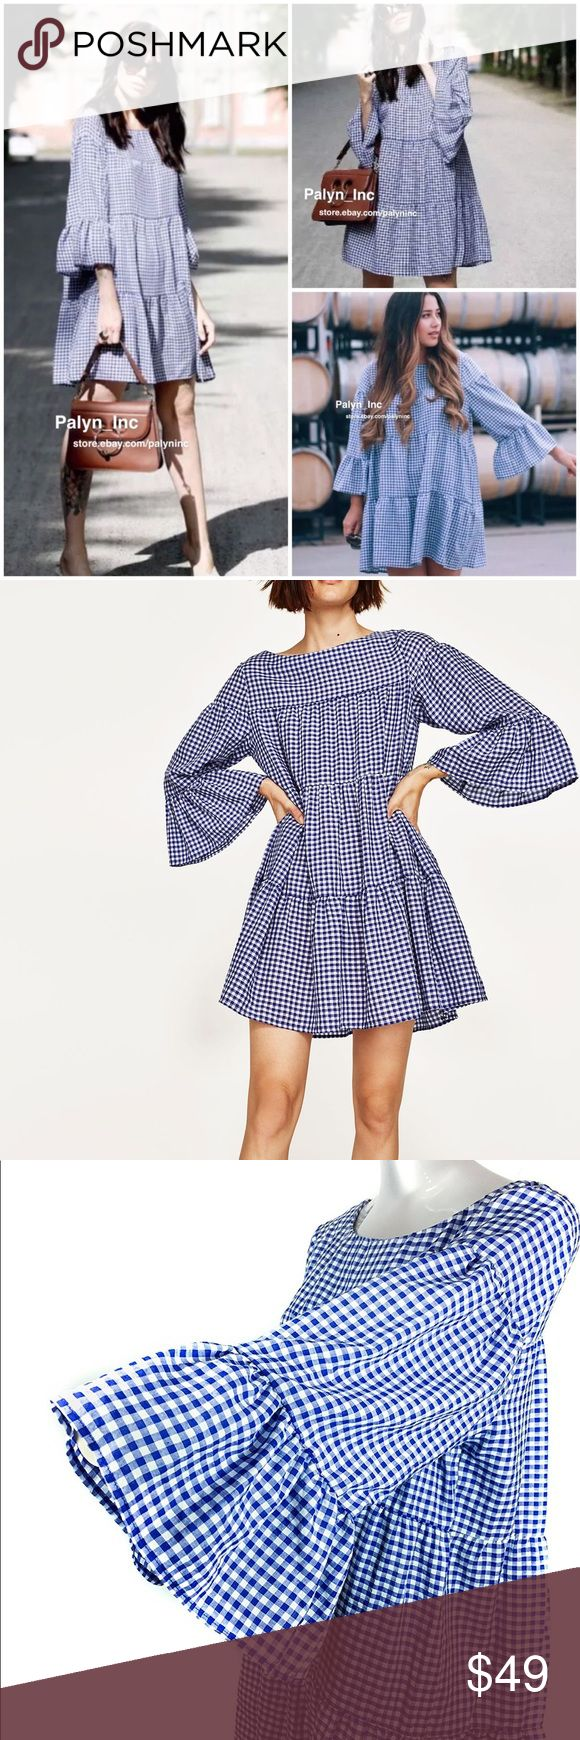 Zara NWOT gingham print mini dress tunic bloggers New without tags beautiful and famous dress mini in trendy gingham print. I have the blue one for sale size M Zara Dresses Mini